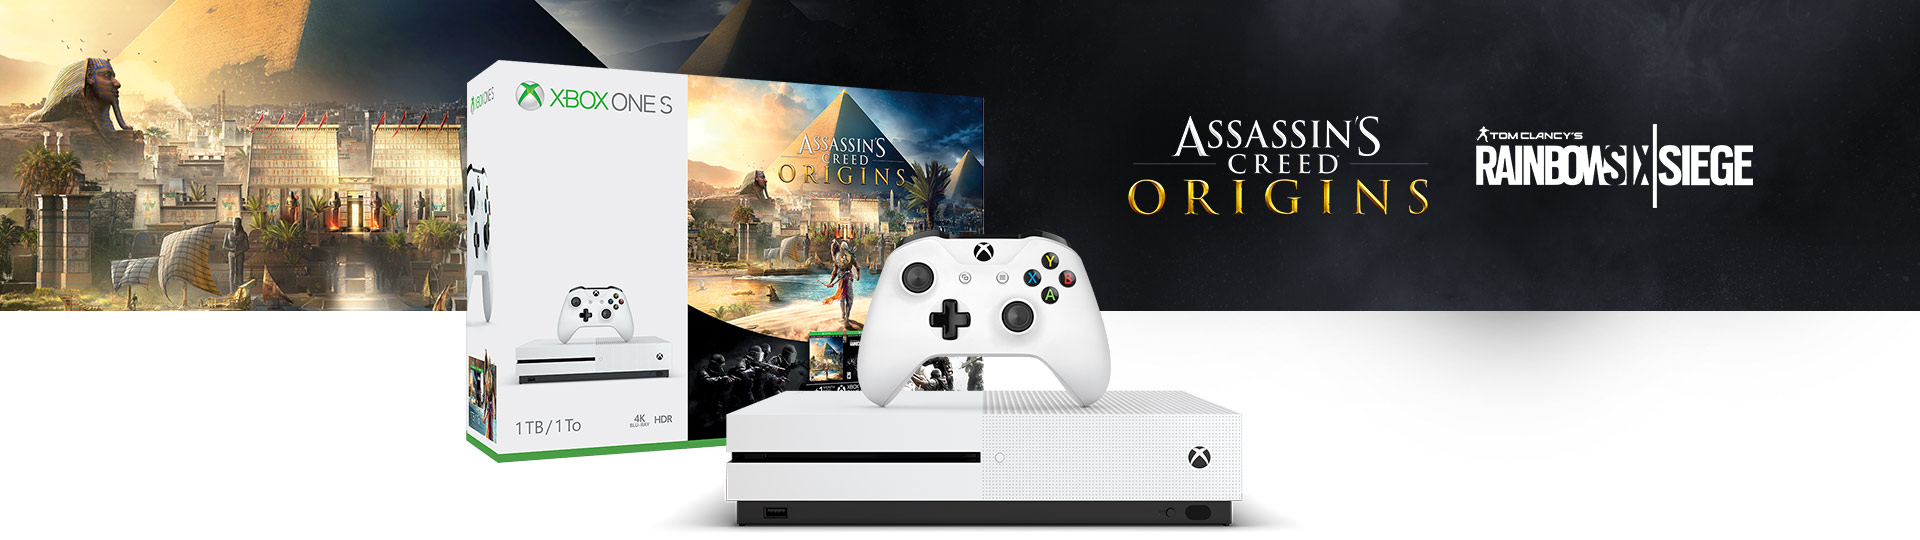 Xbox One S Assassin's Creed: Origins Bonus Bundle (1 TB)